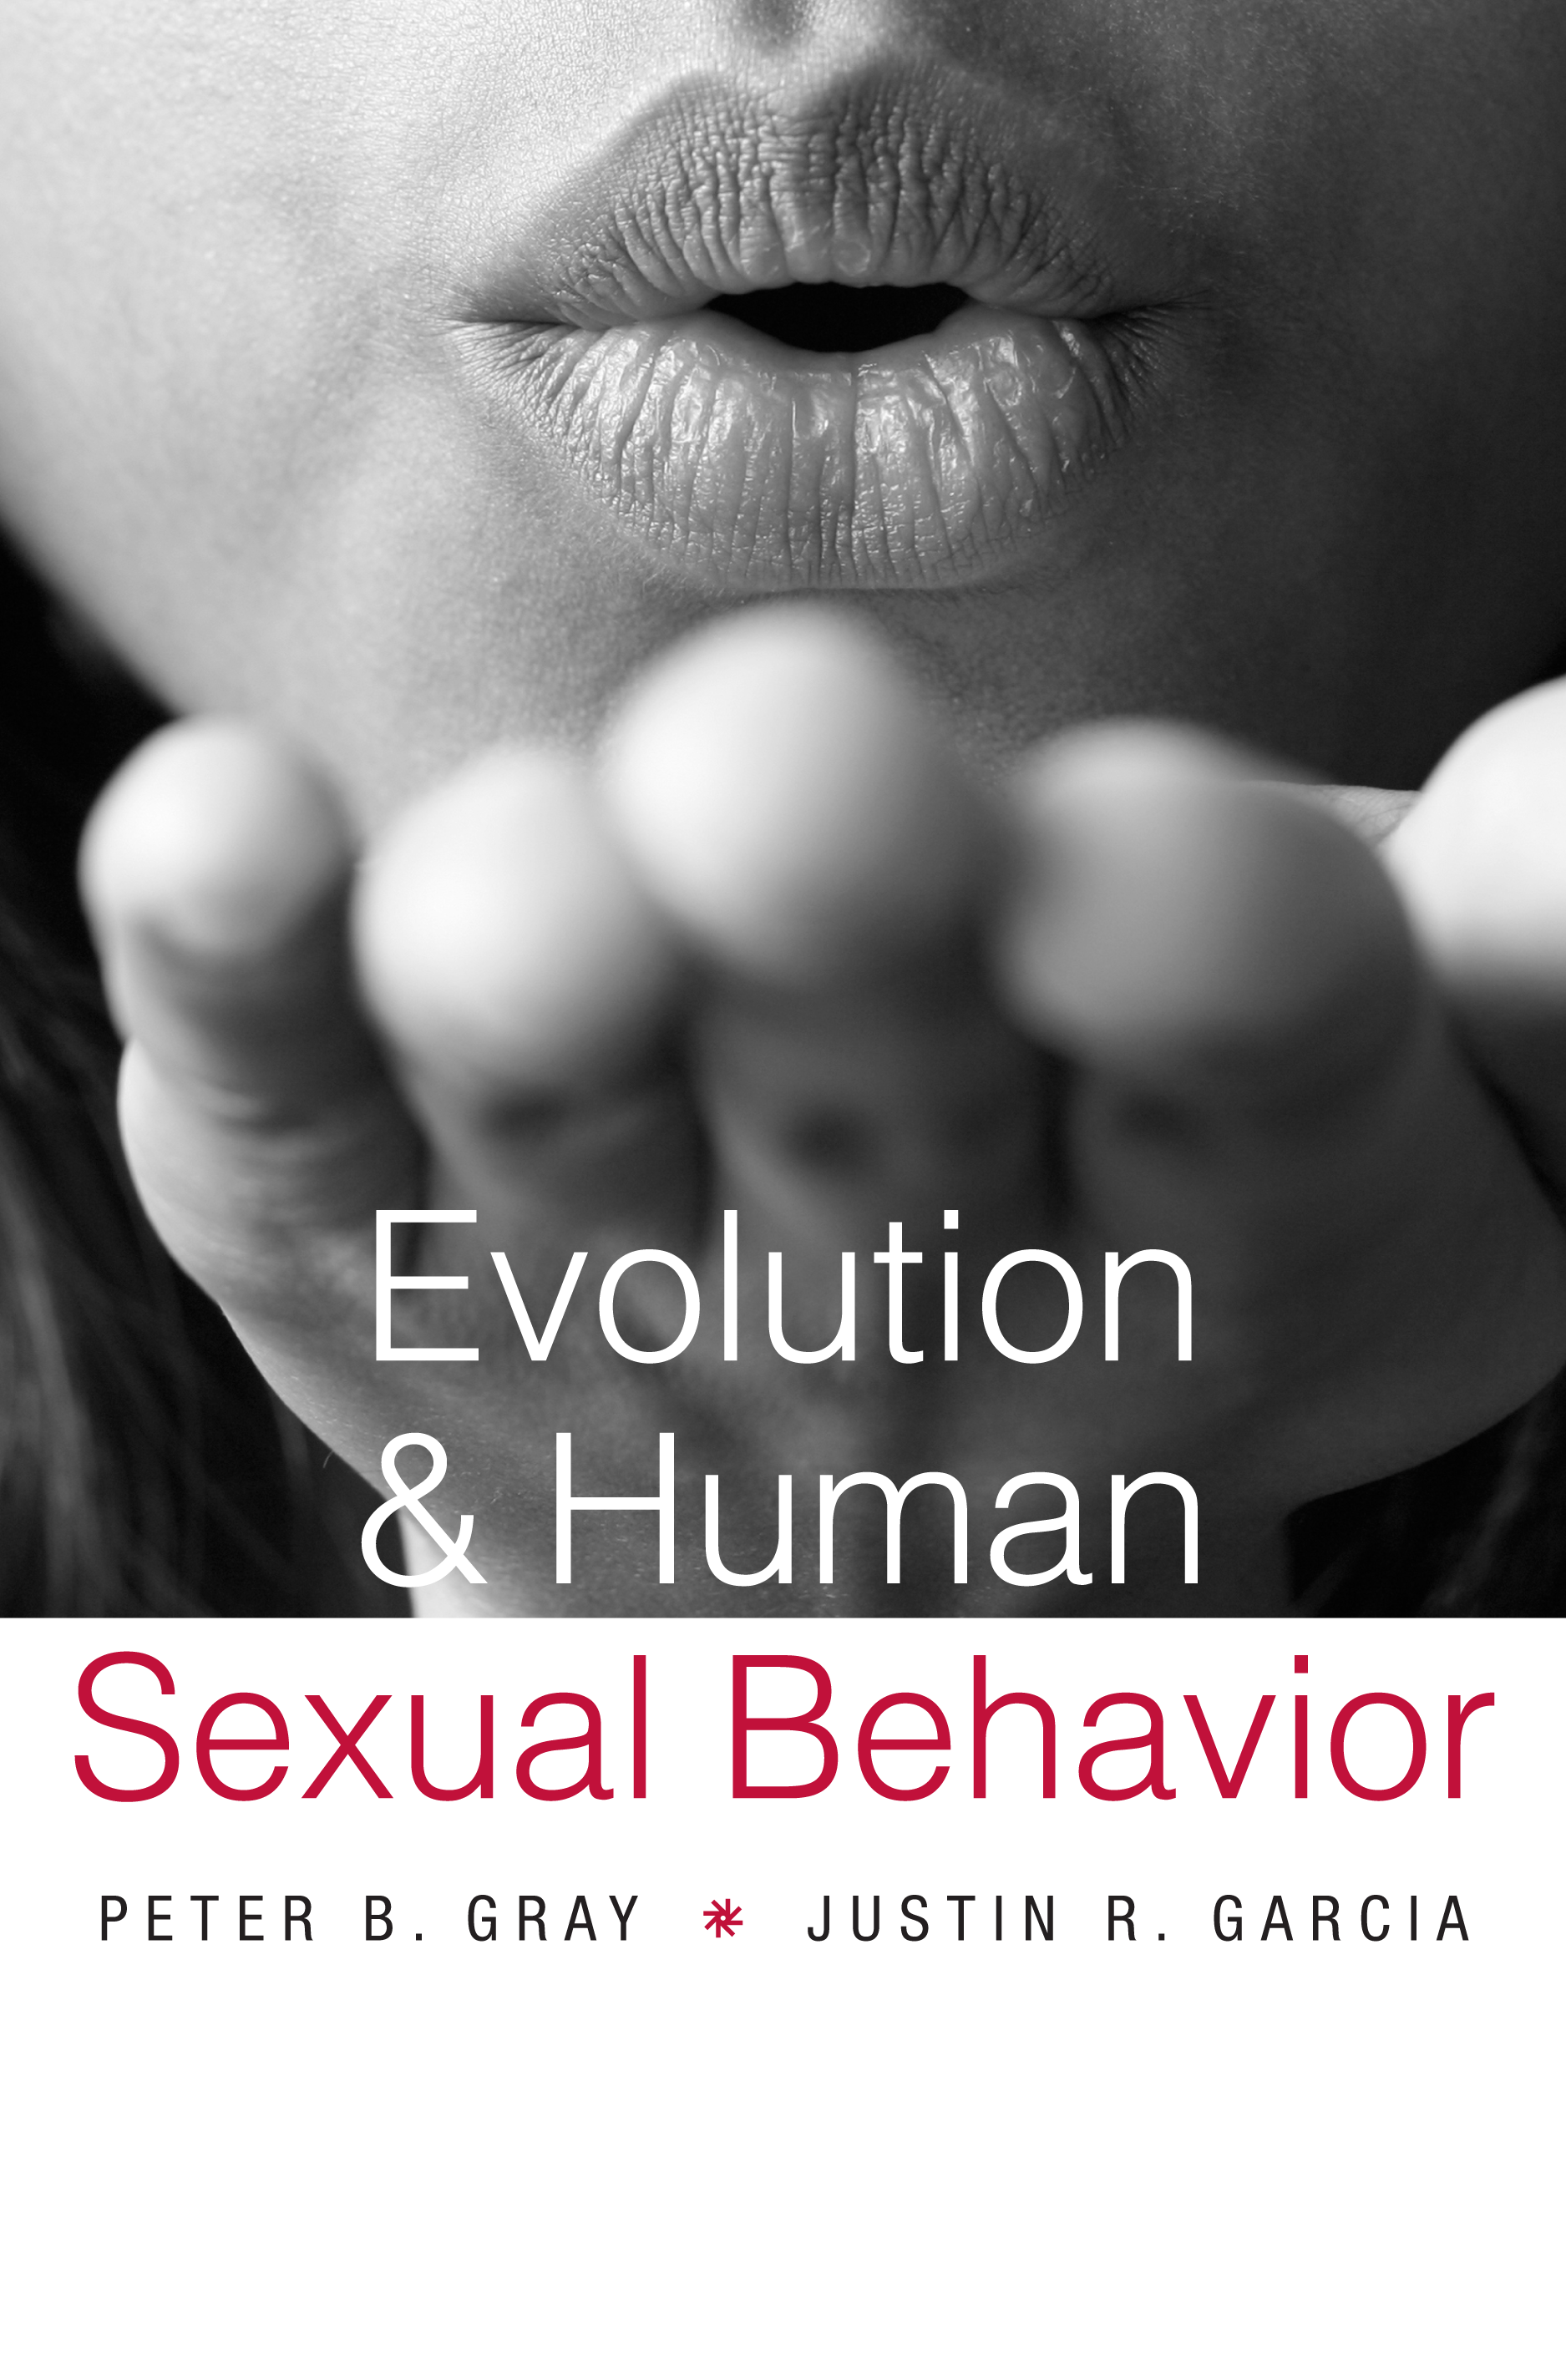 The cover of Evolution & Human Sexual Behavior, edited by Peter Gray and Justin Garcia (2013). The color image is a black and white picture of the lower half of a light skinned woman's face blowing a kiss at the camera.